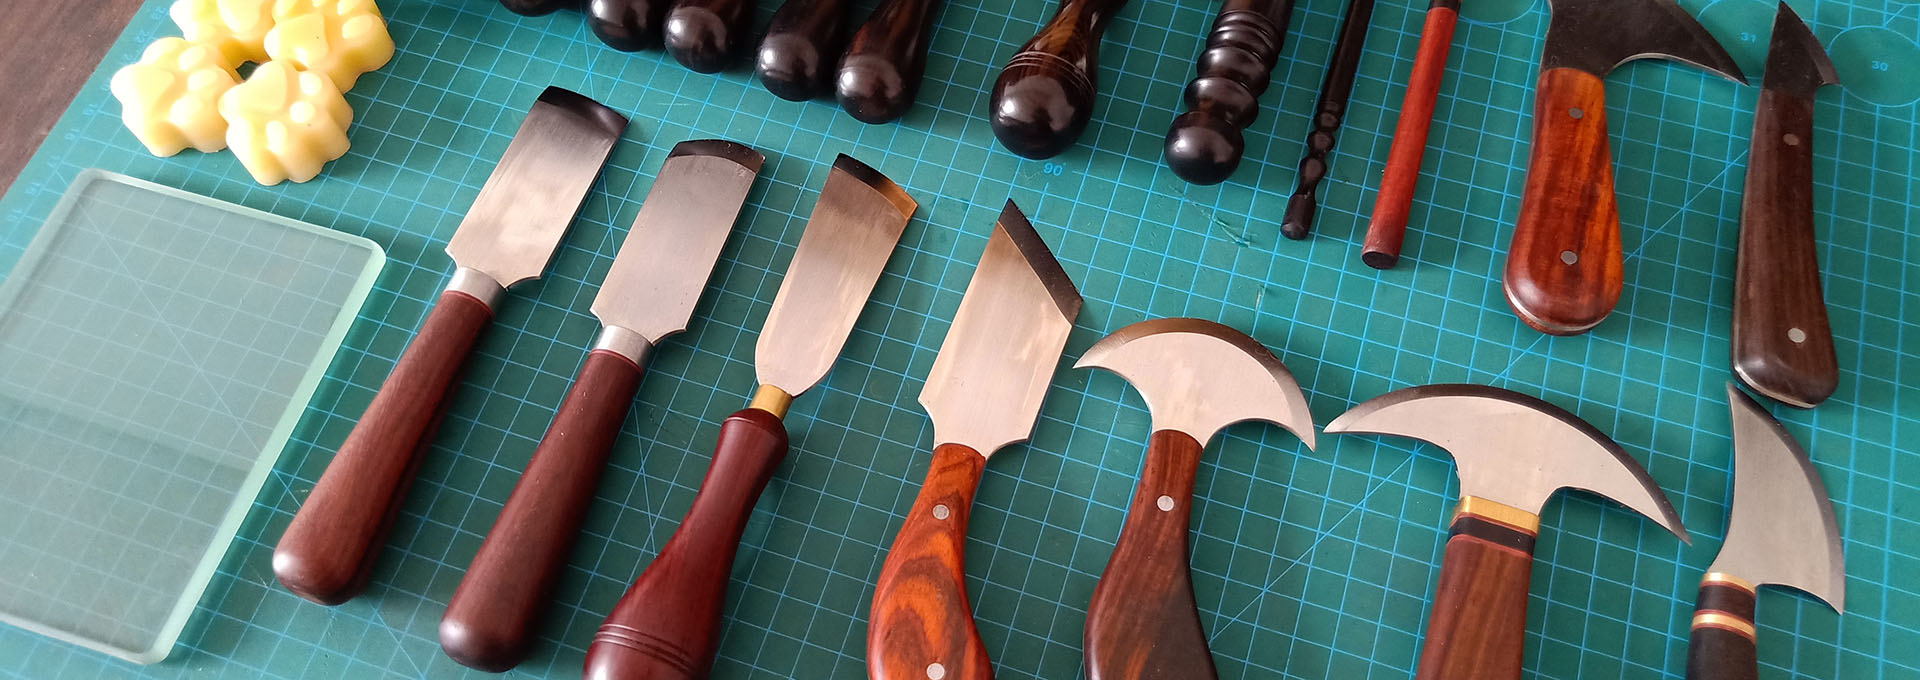 Leather knives